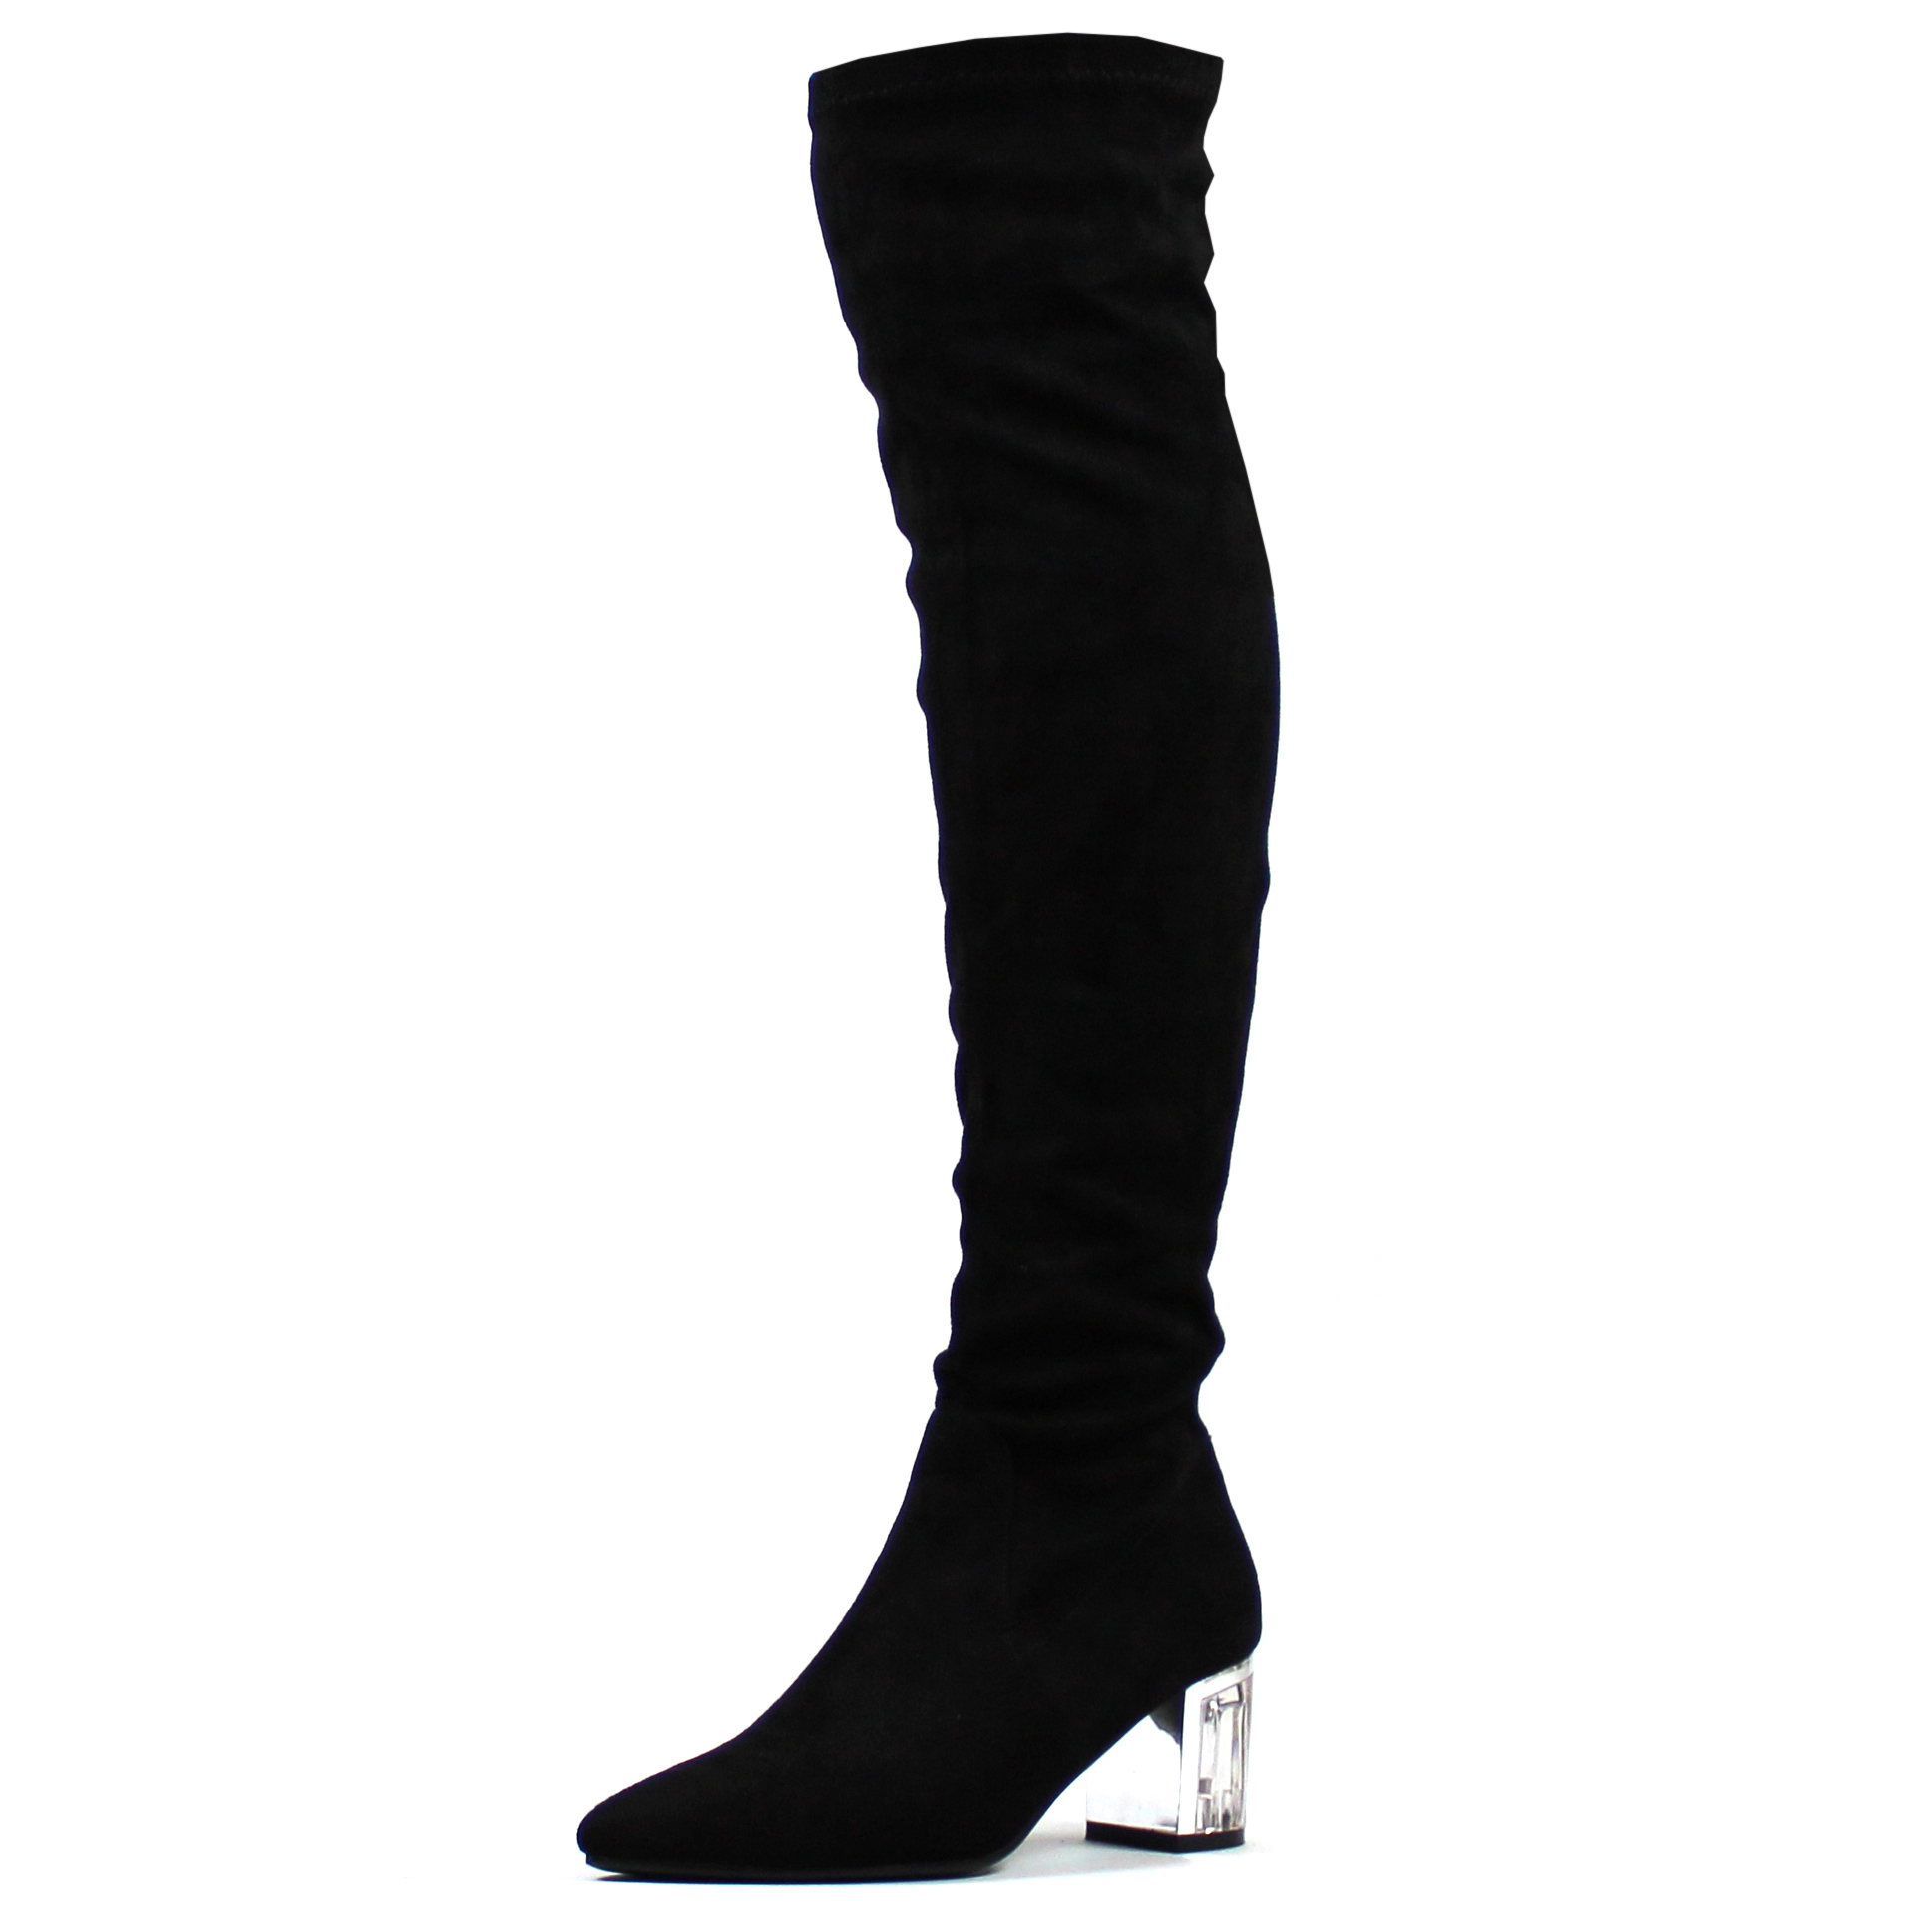 fashion boots drawing. ladies-stretch-fashion-clear-transparent-high-heel-sock- fashion boots drawing